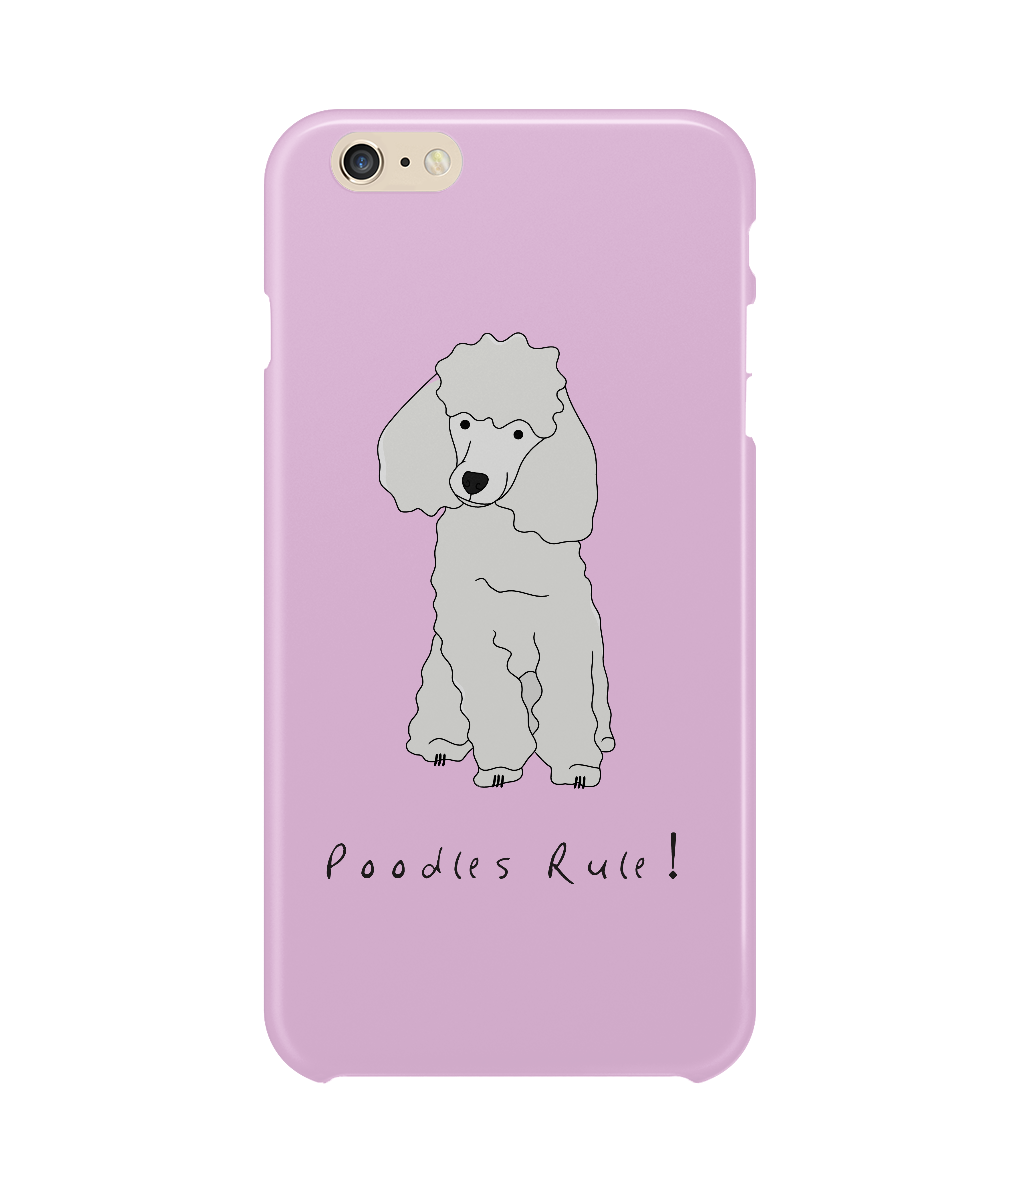 iPhone 6 Plus Full Wrap Phone Case - Poodles Rule!